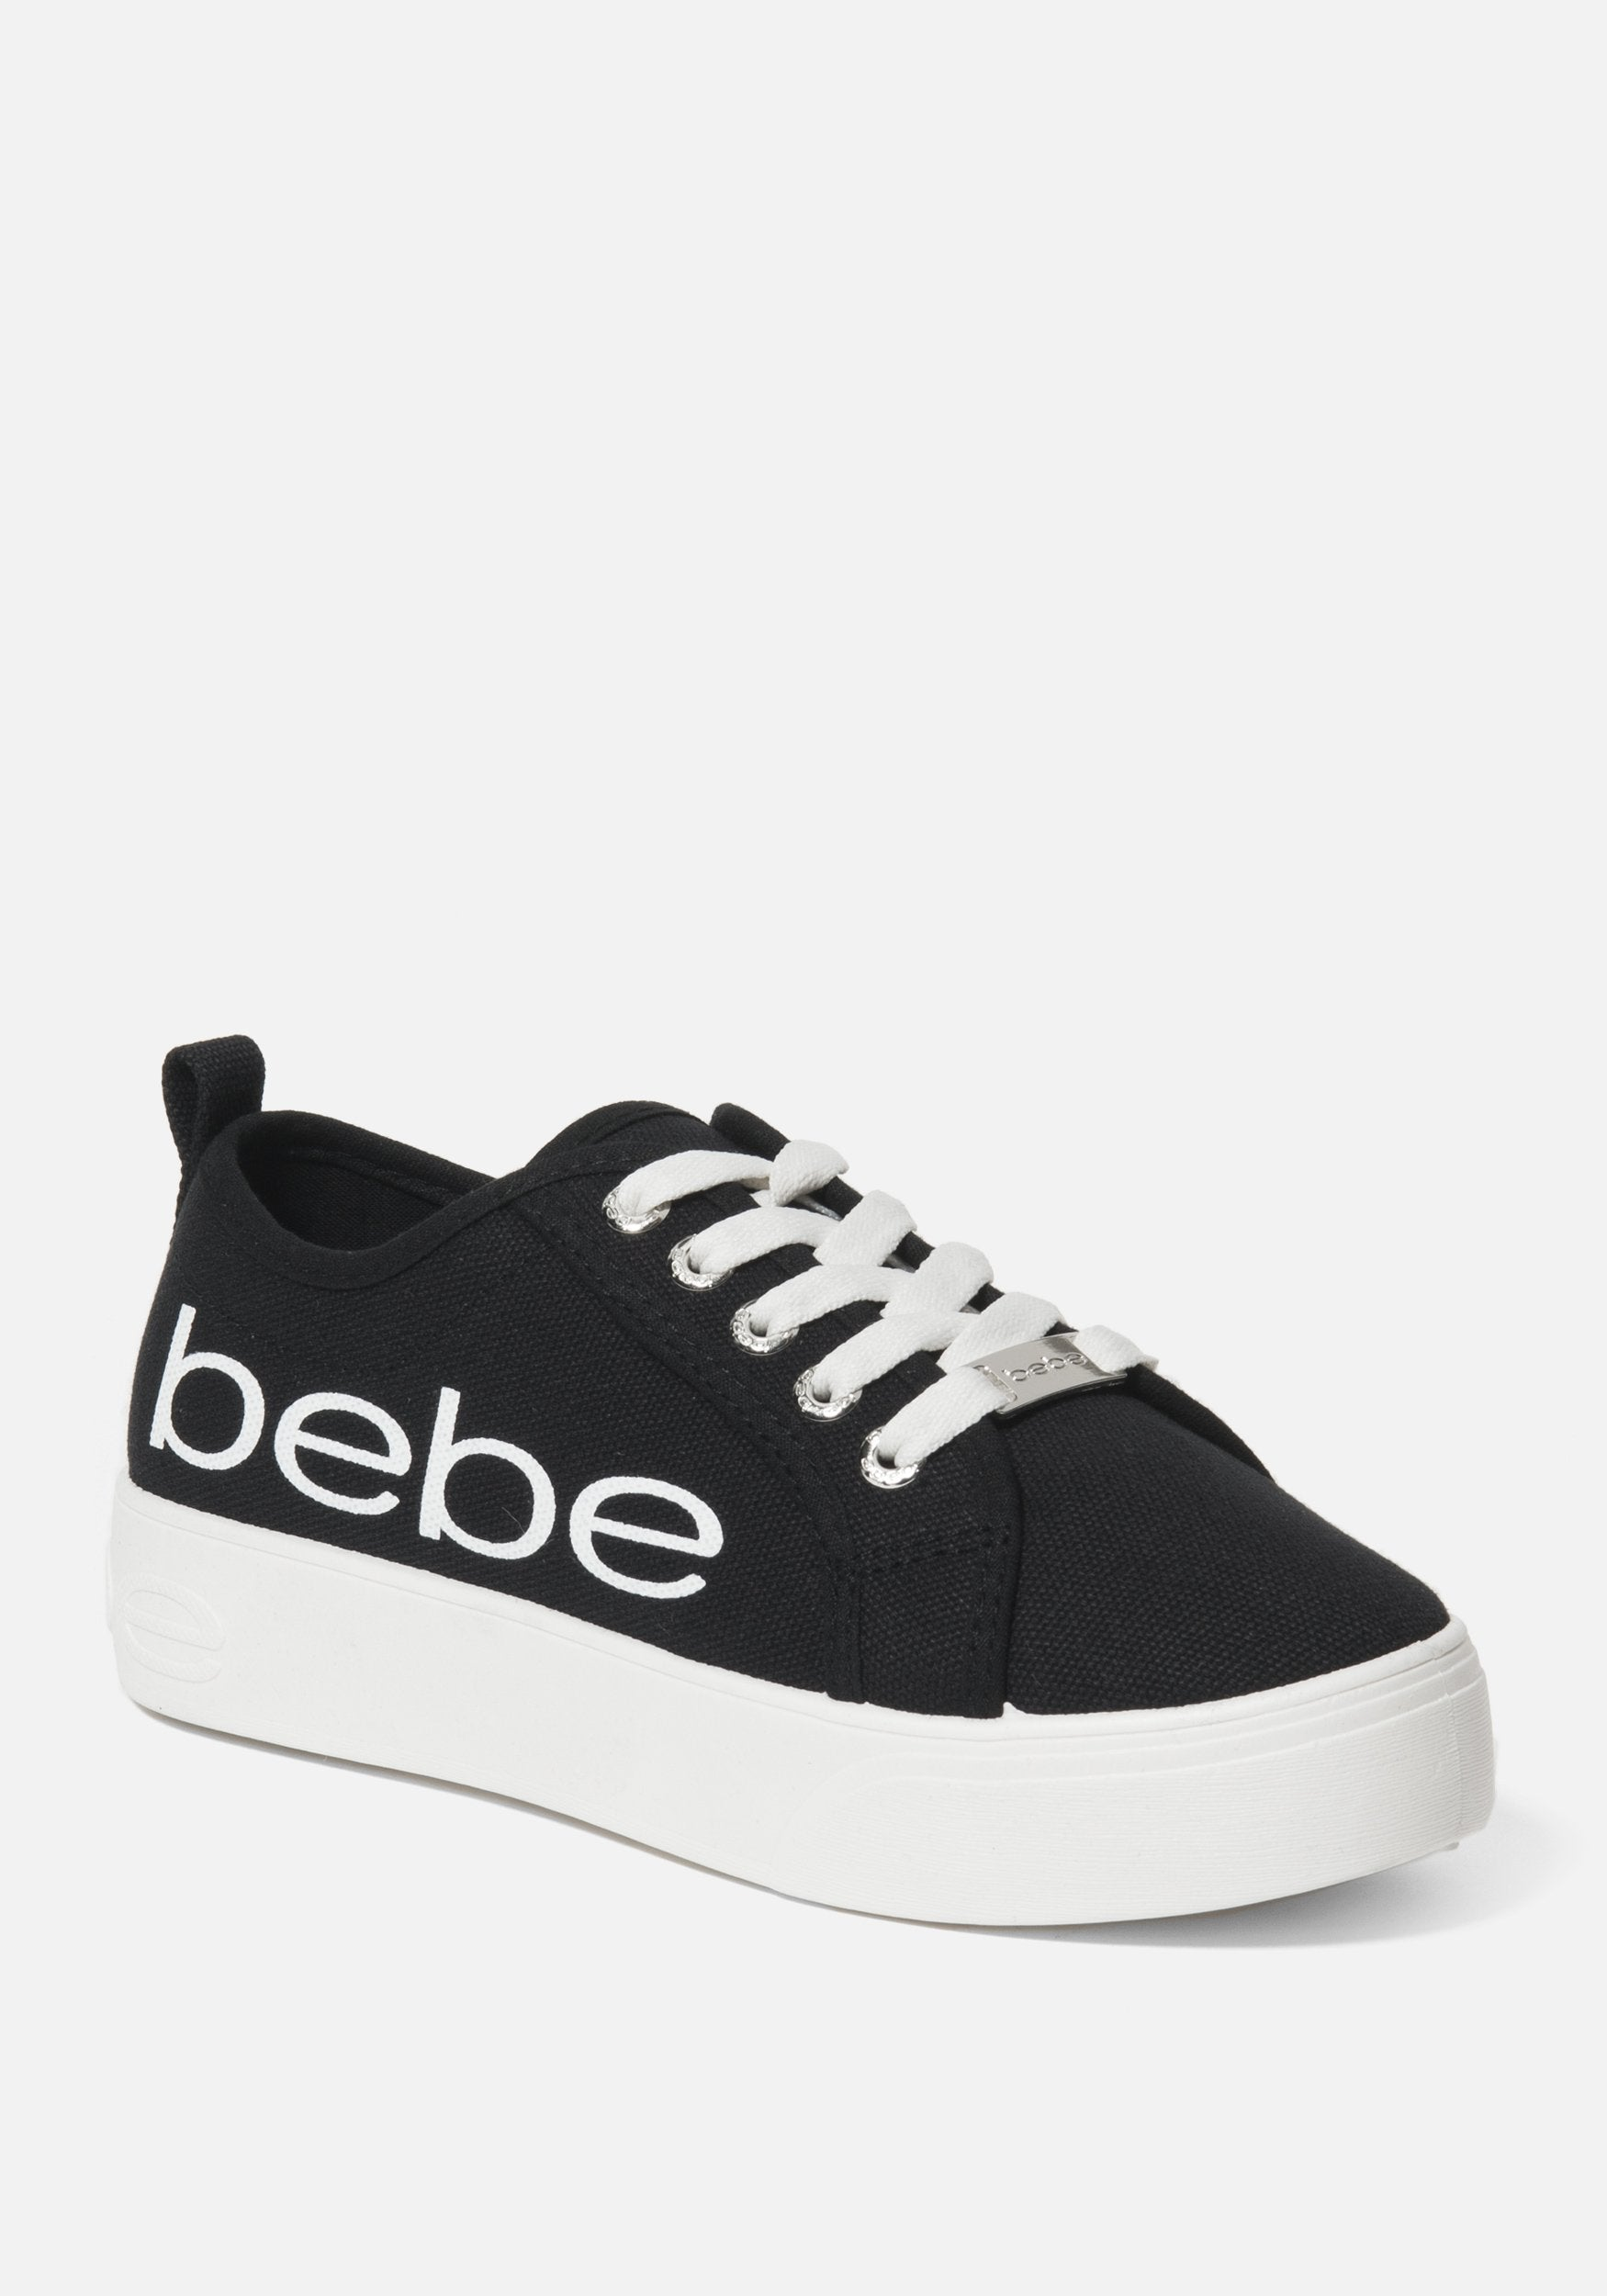 Bebe Women's Destini Platform Sneakers, Size 6 in Black Synthetic